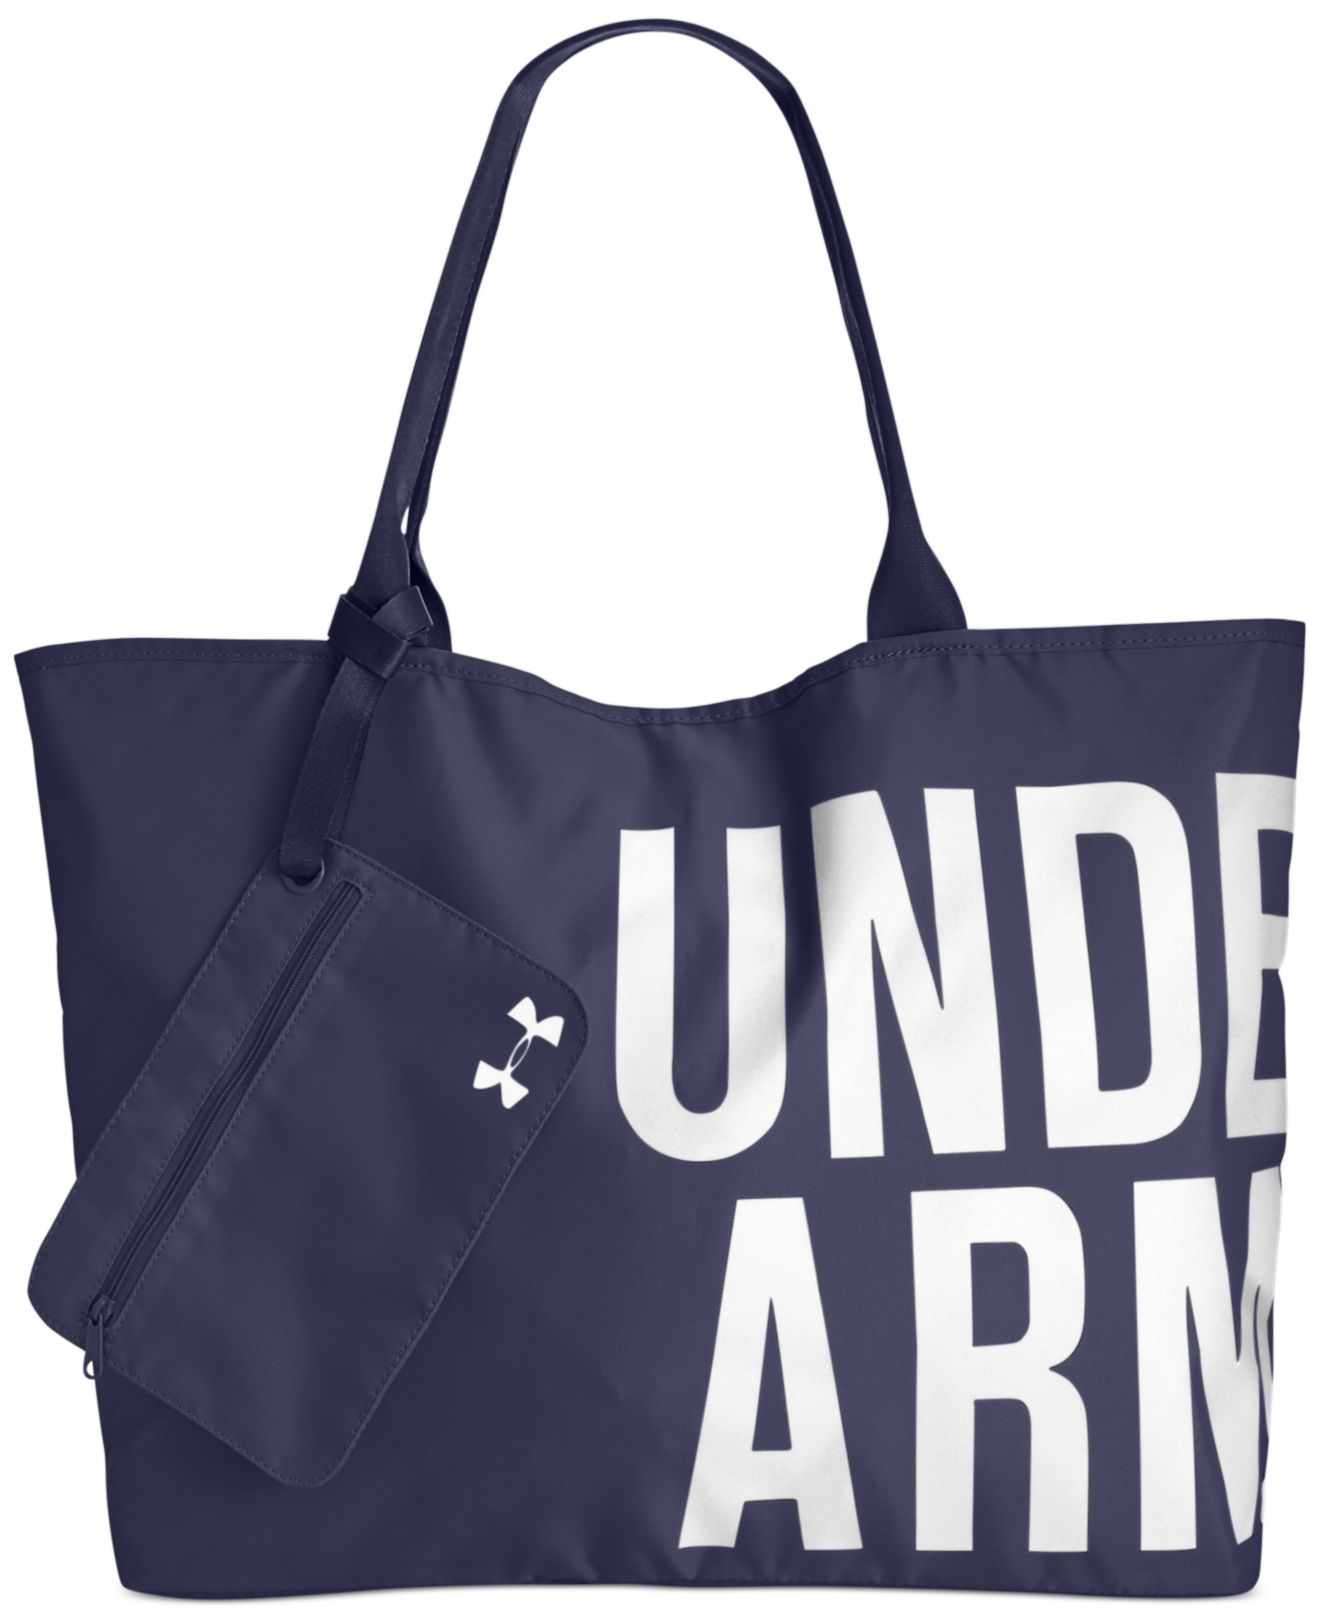 Tote Bags Under $30